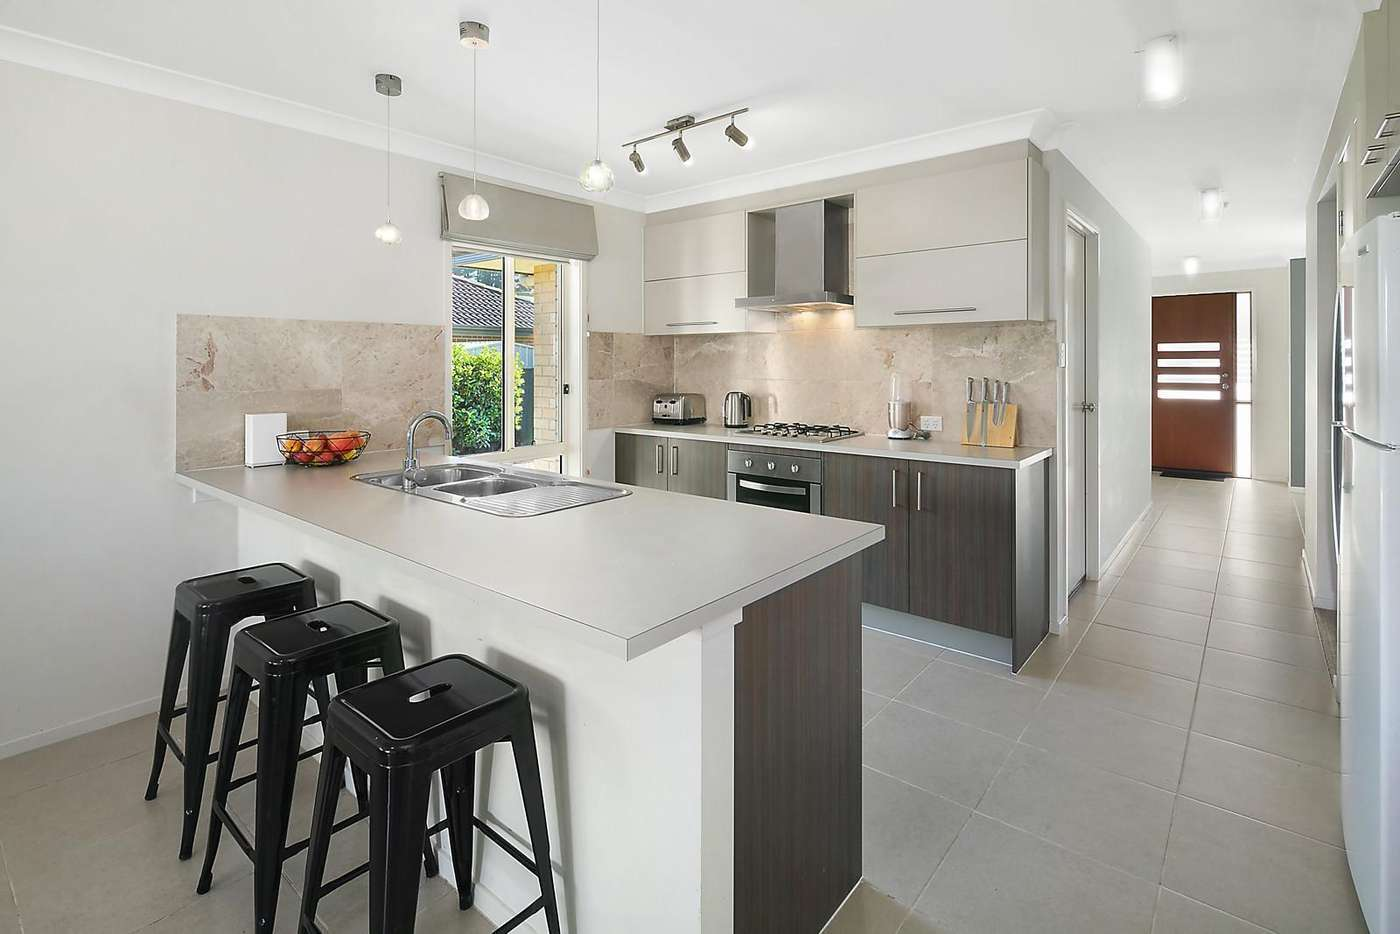 Main view of Homely house listing, 17 Deniston Circuit, Bungendore, NSW 2621